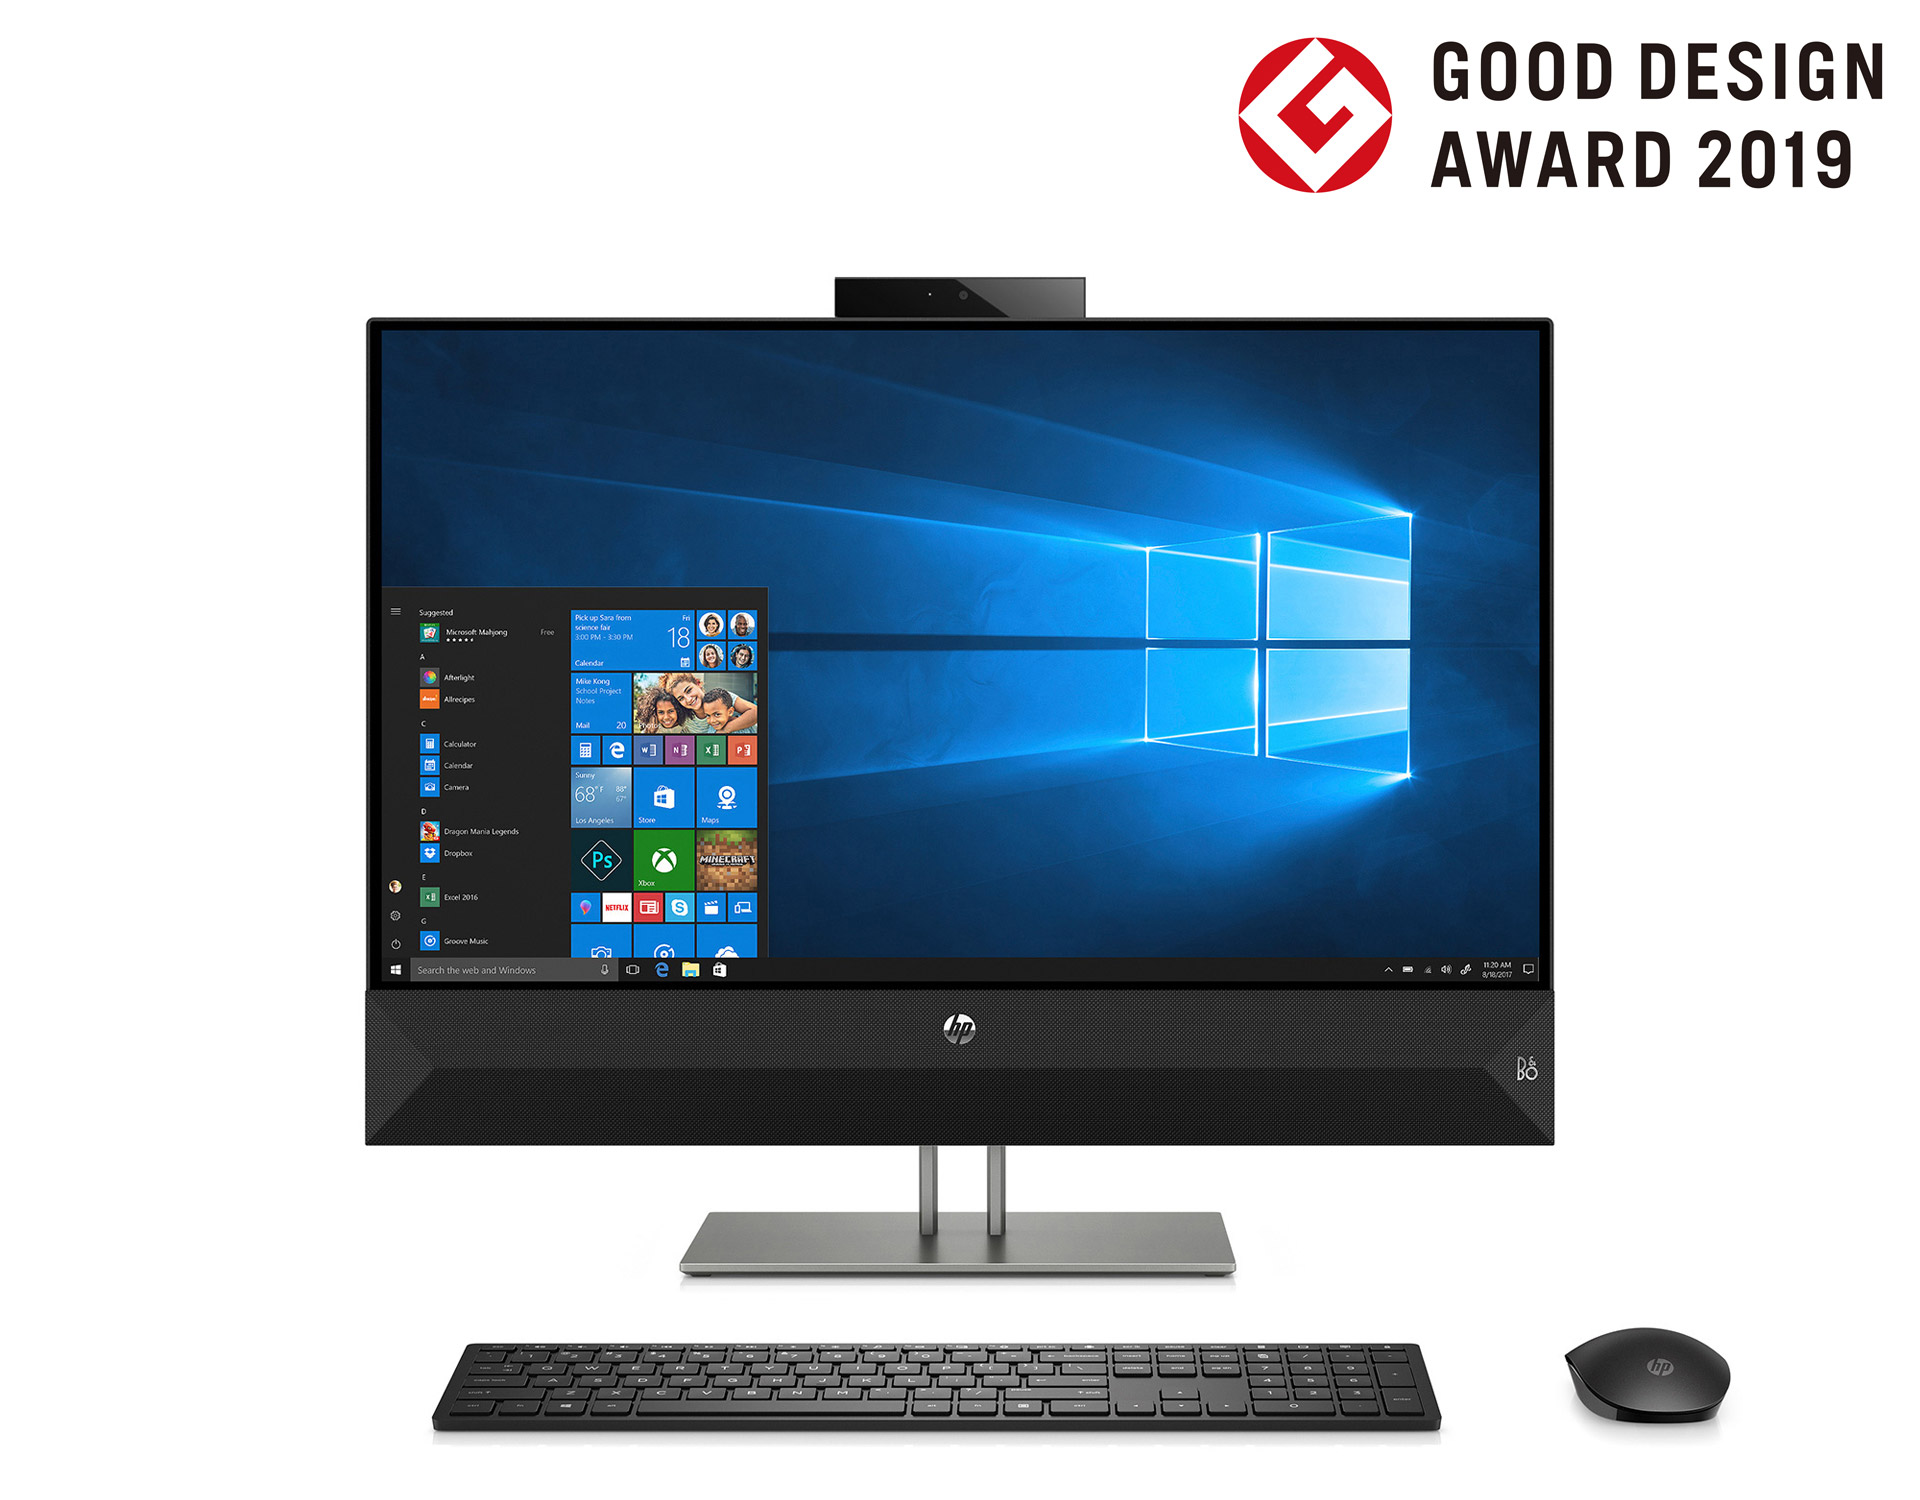 HP Pavilion All-in-One 27-d0001nl